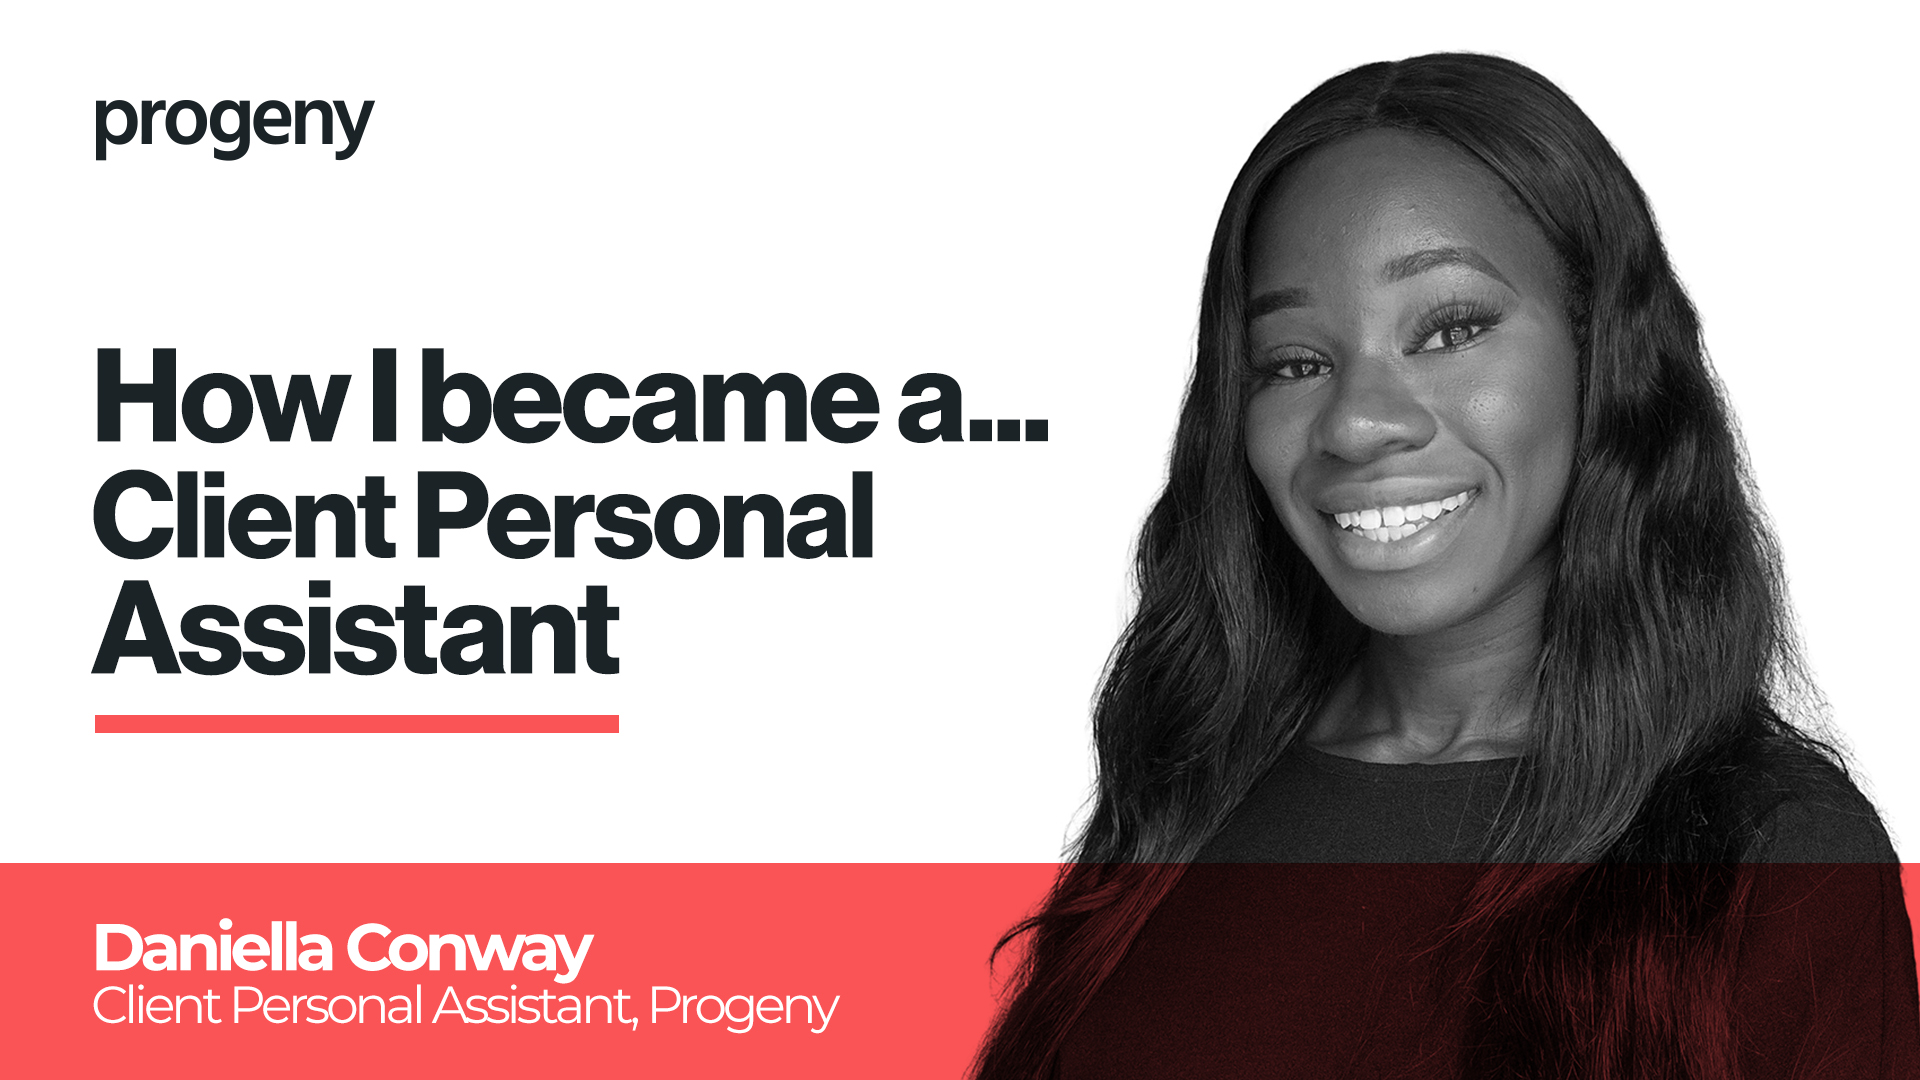 How I became a Client Personal Assistant interview